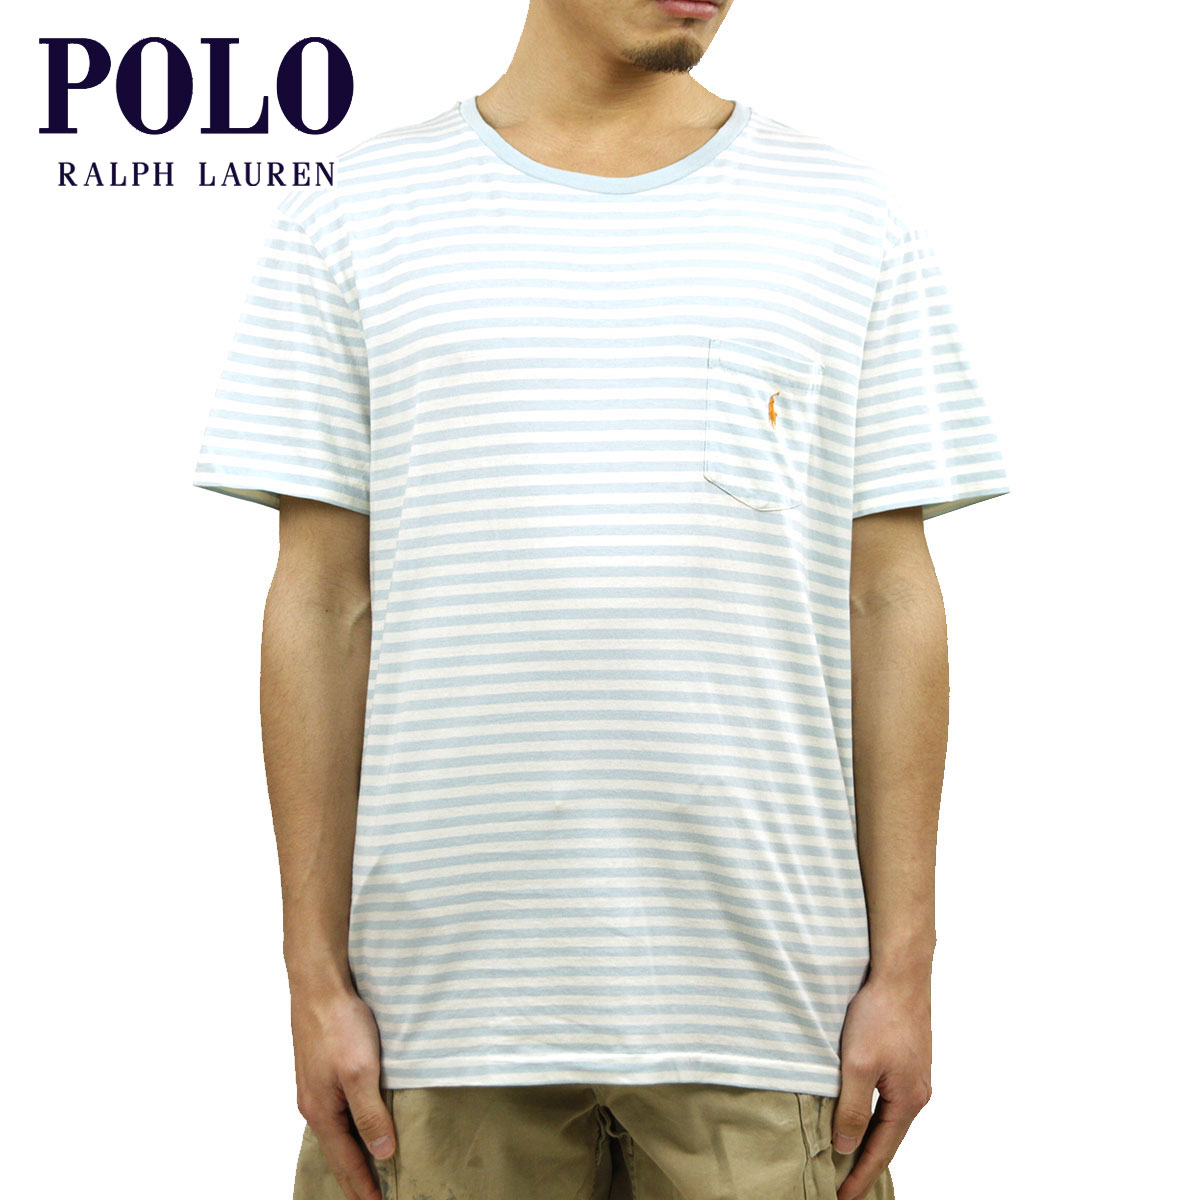 4129923f Rakuten Ichiba shop MIXON: Polo Ralph Lauren POLO RALPH LAUREN regular  article men short sleeves T-shirt Striped Pocket T-Shirt BLUE D00S20 |  Rakuten Global ...